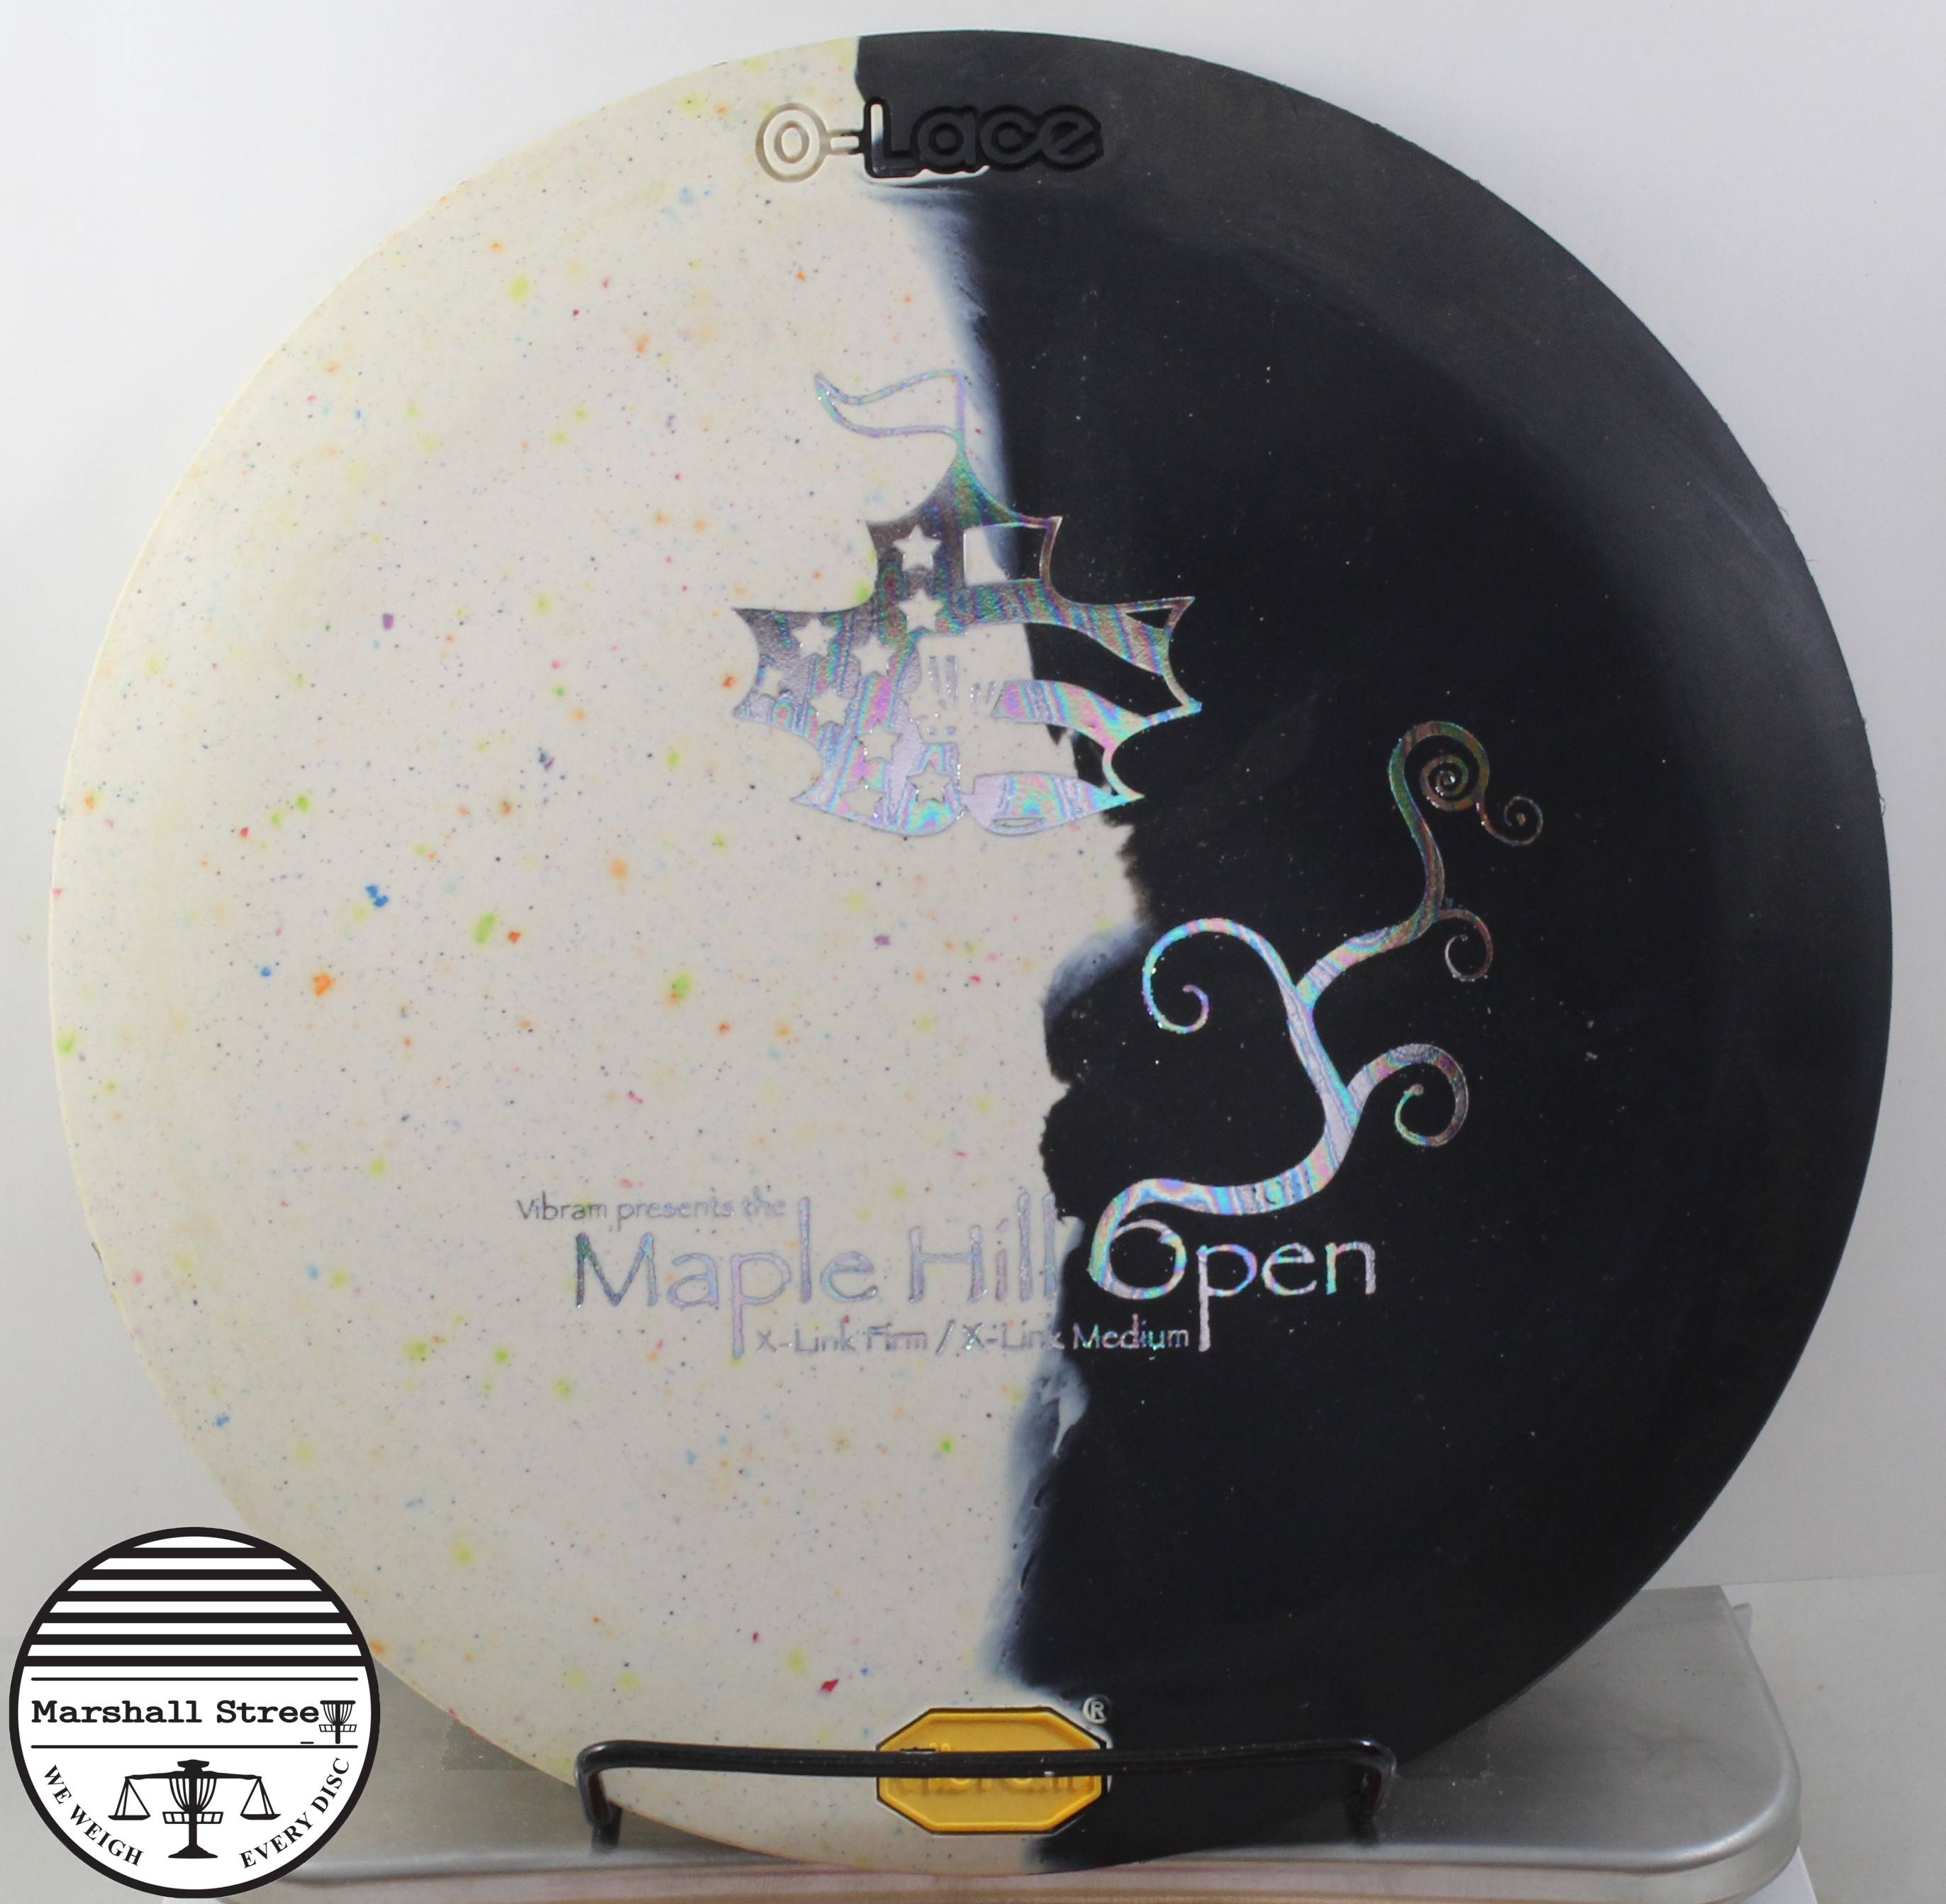 O-Lace, 2014 Maple Hill Open